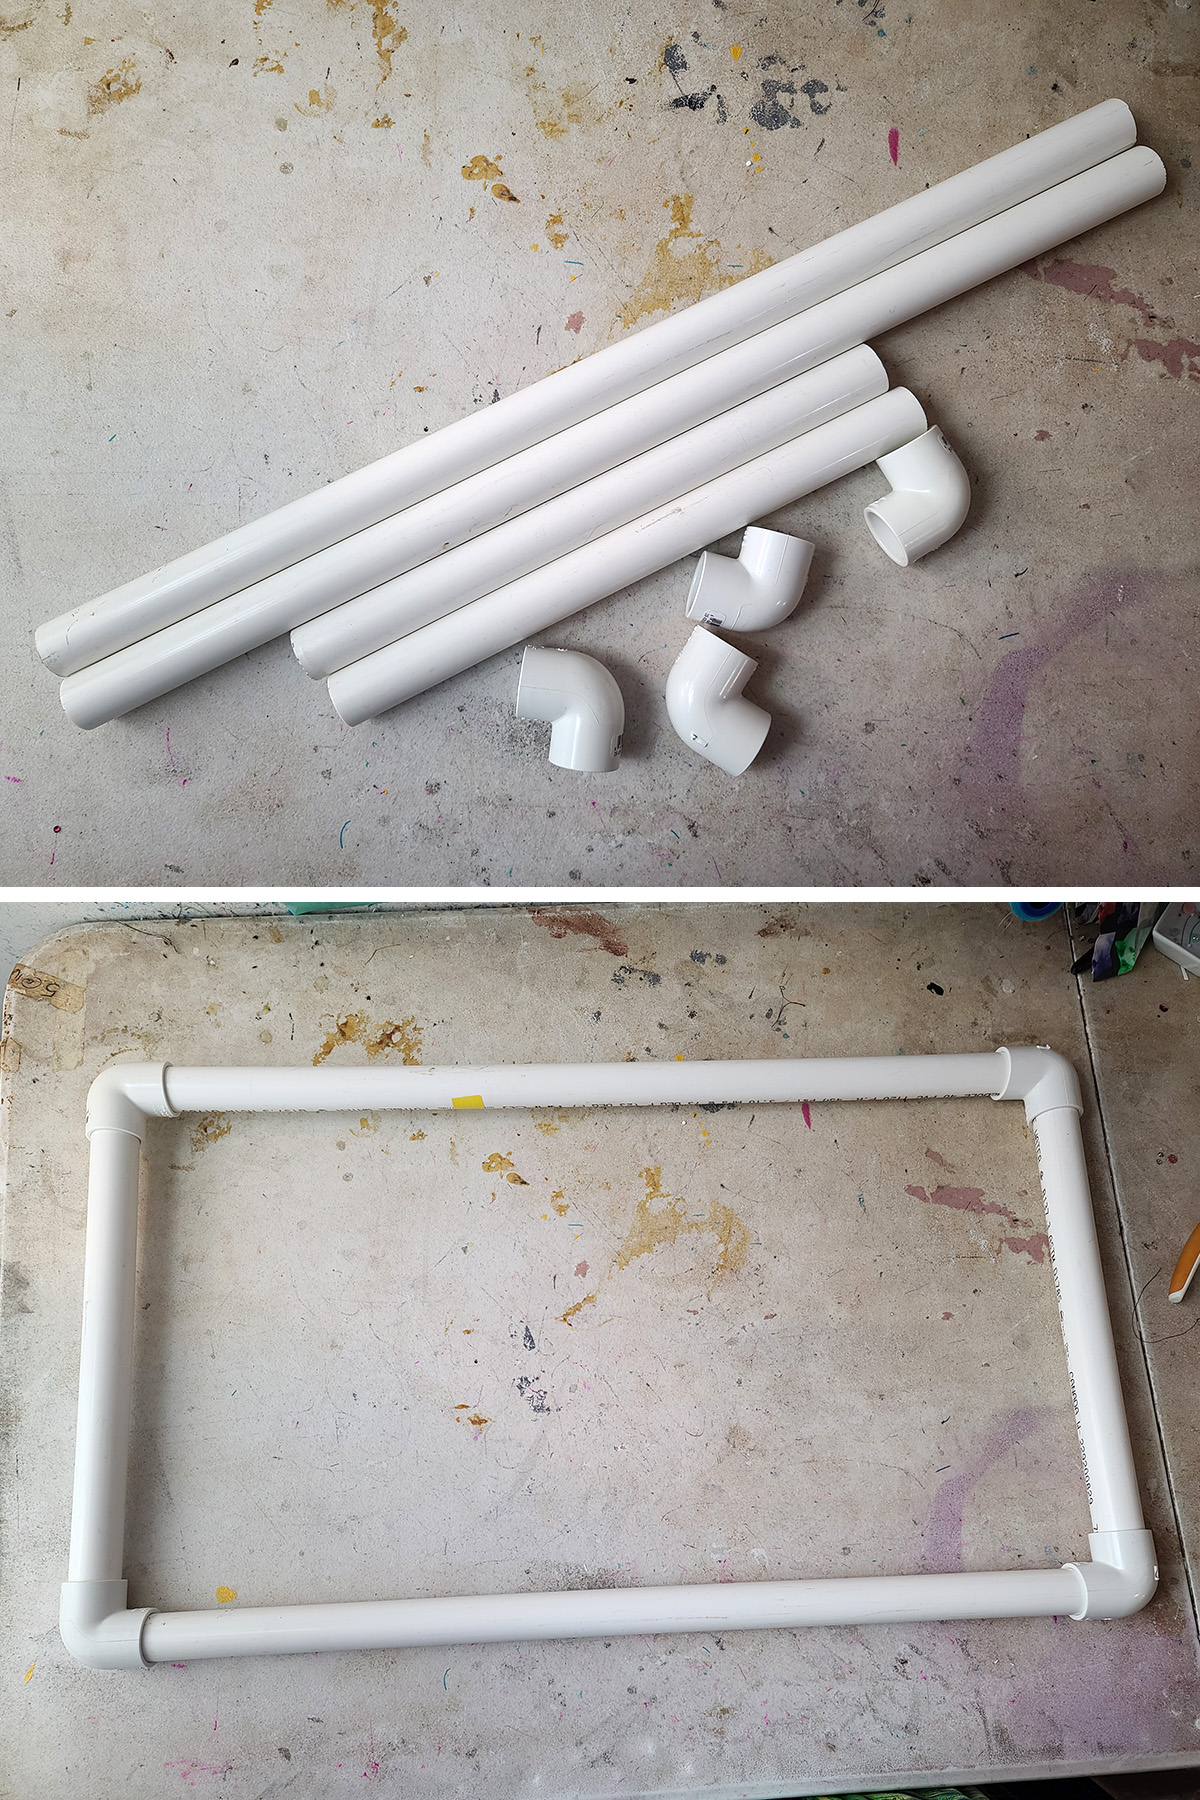 A two part compilation image showing 4 pieces of white PVC pipe and connectors, and then those pieces assembled to make a rectangle.